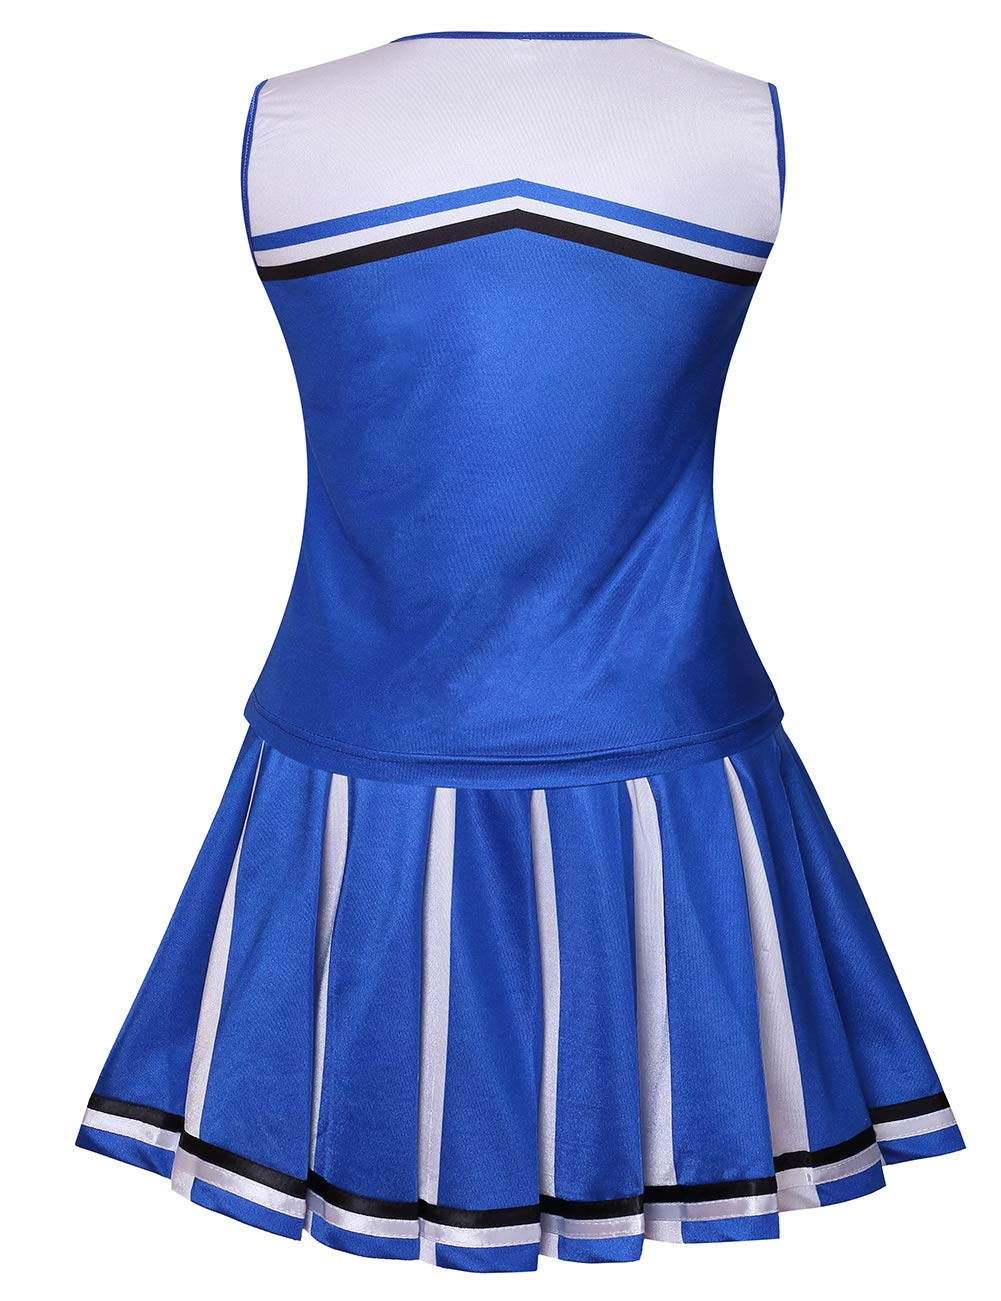 Colorful House Womens Cheerleader Costume Uniform Fancy Dress (Size L, Blue) by Colorful House (Image #3)